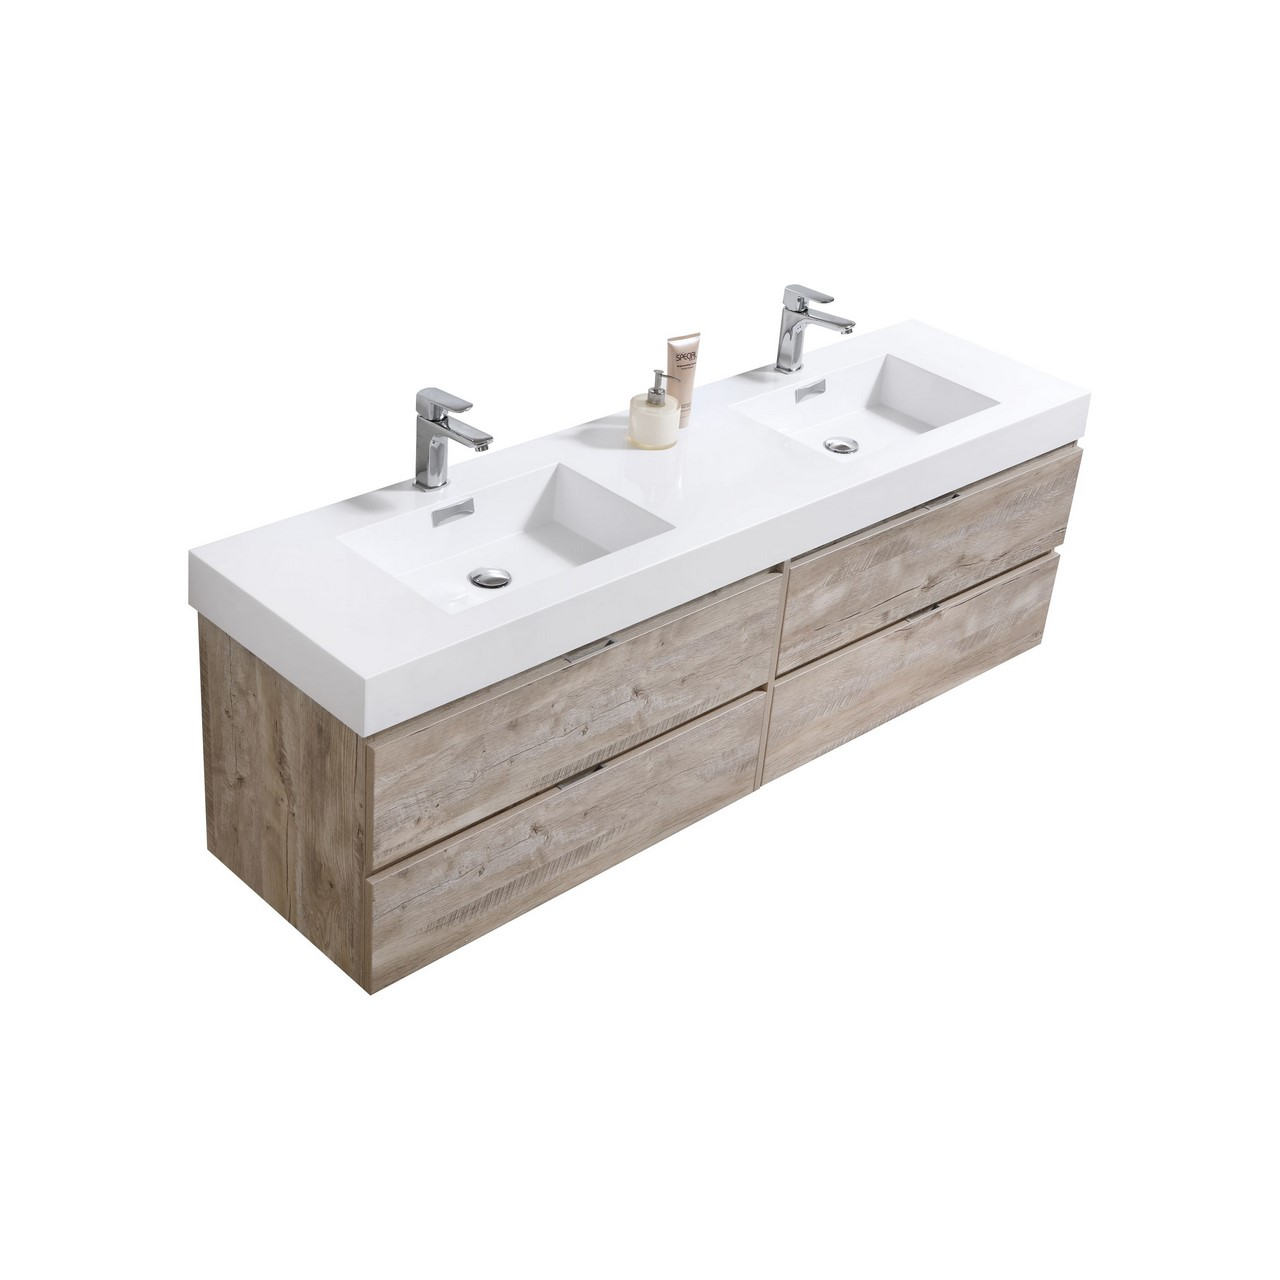 "Kubebath Bliss 72"" Double  Sink Nature Wood Wall Mount Modern Bathroom Vanity"